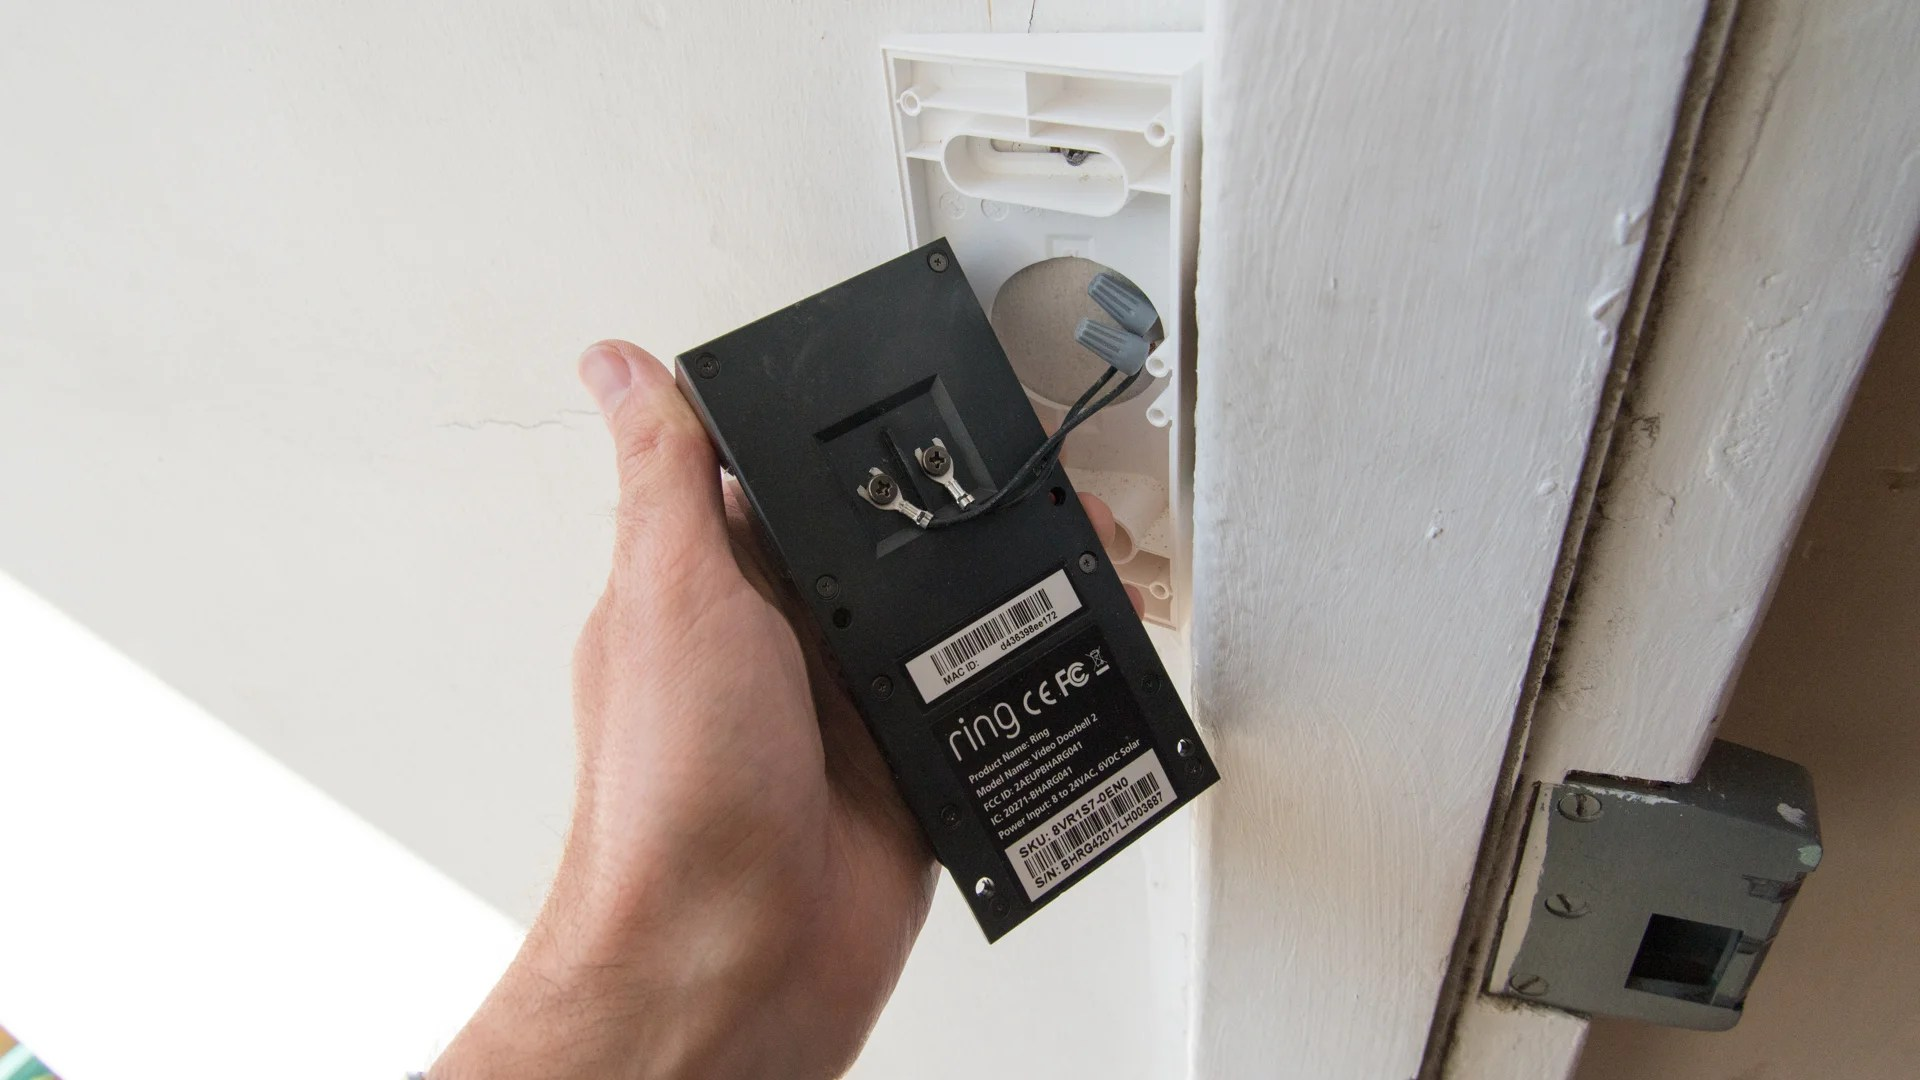 hight resolution of as i already had a doorbell i used its existing wires to hook up the video doorbell 2 the bundled extension cables were handy for mounting the unit to the